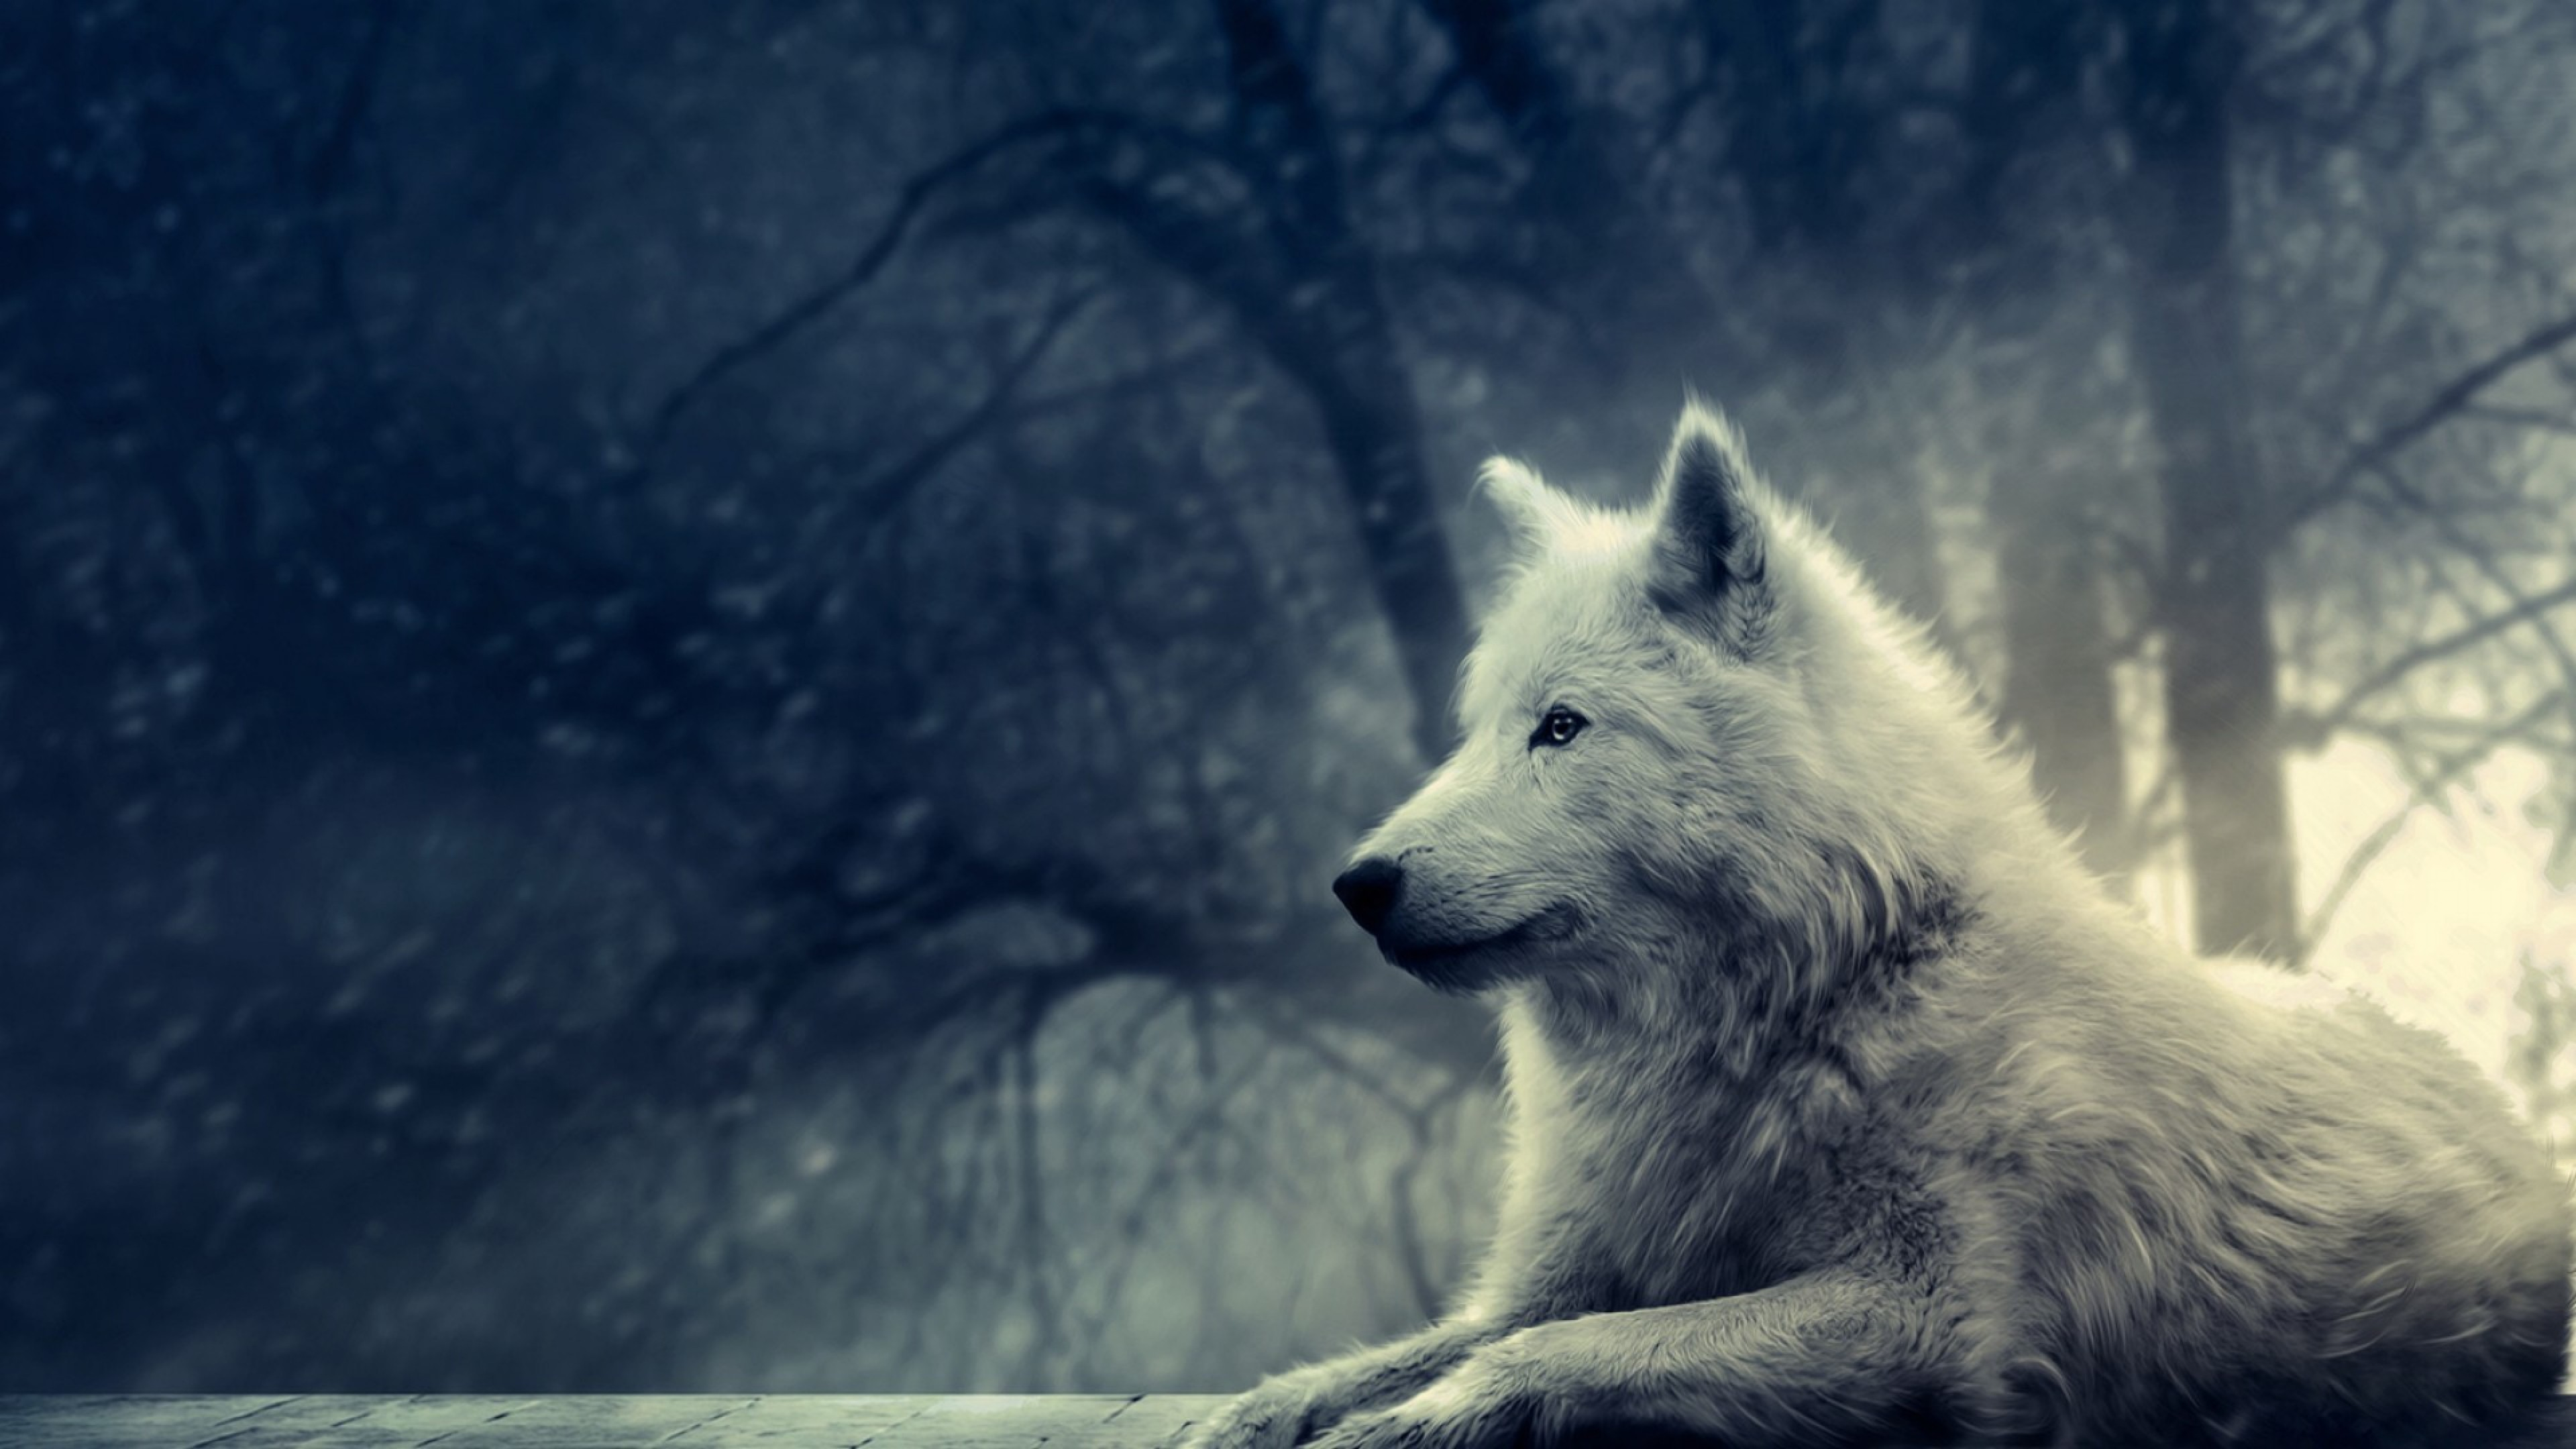 4K Wolf Wallpaper 43 images 3840x2160